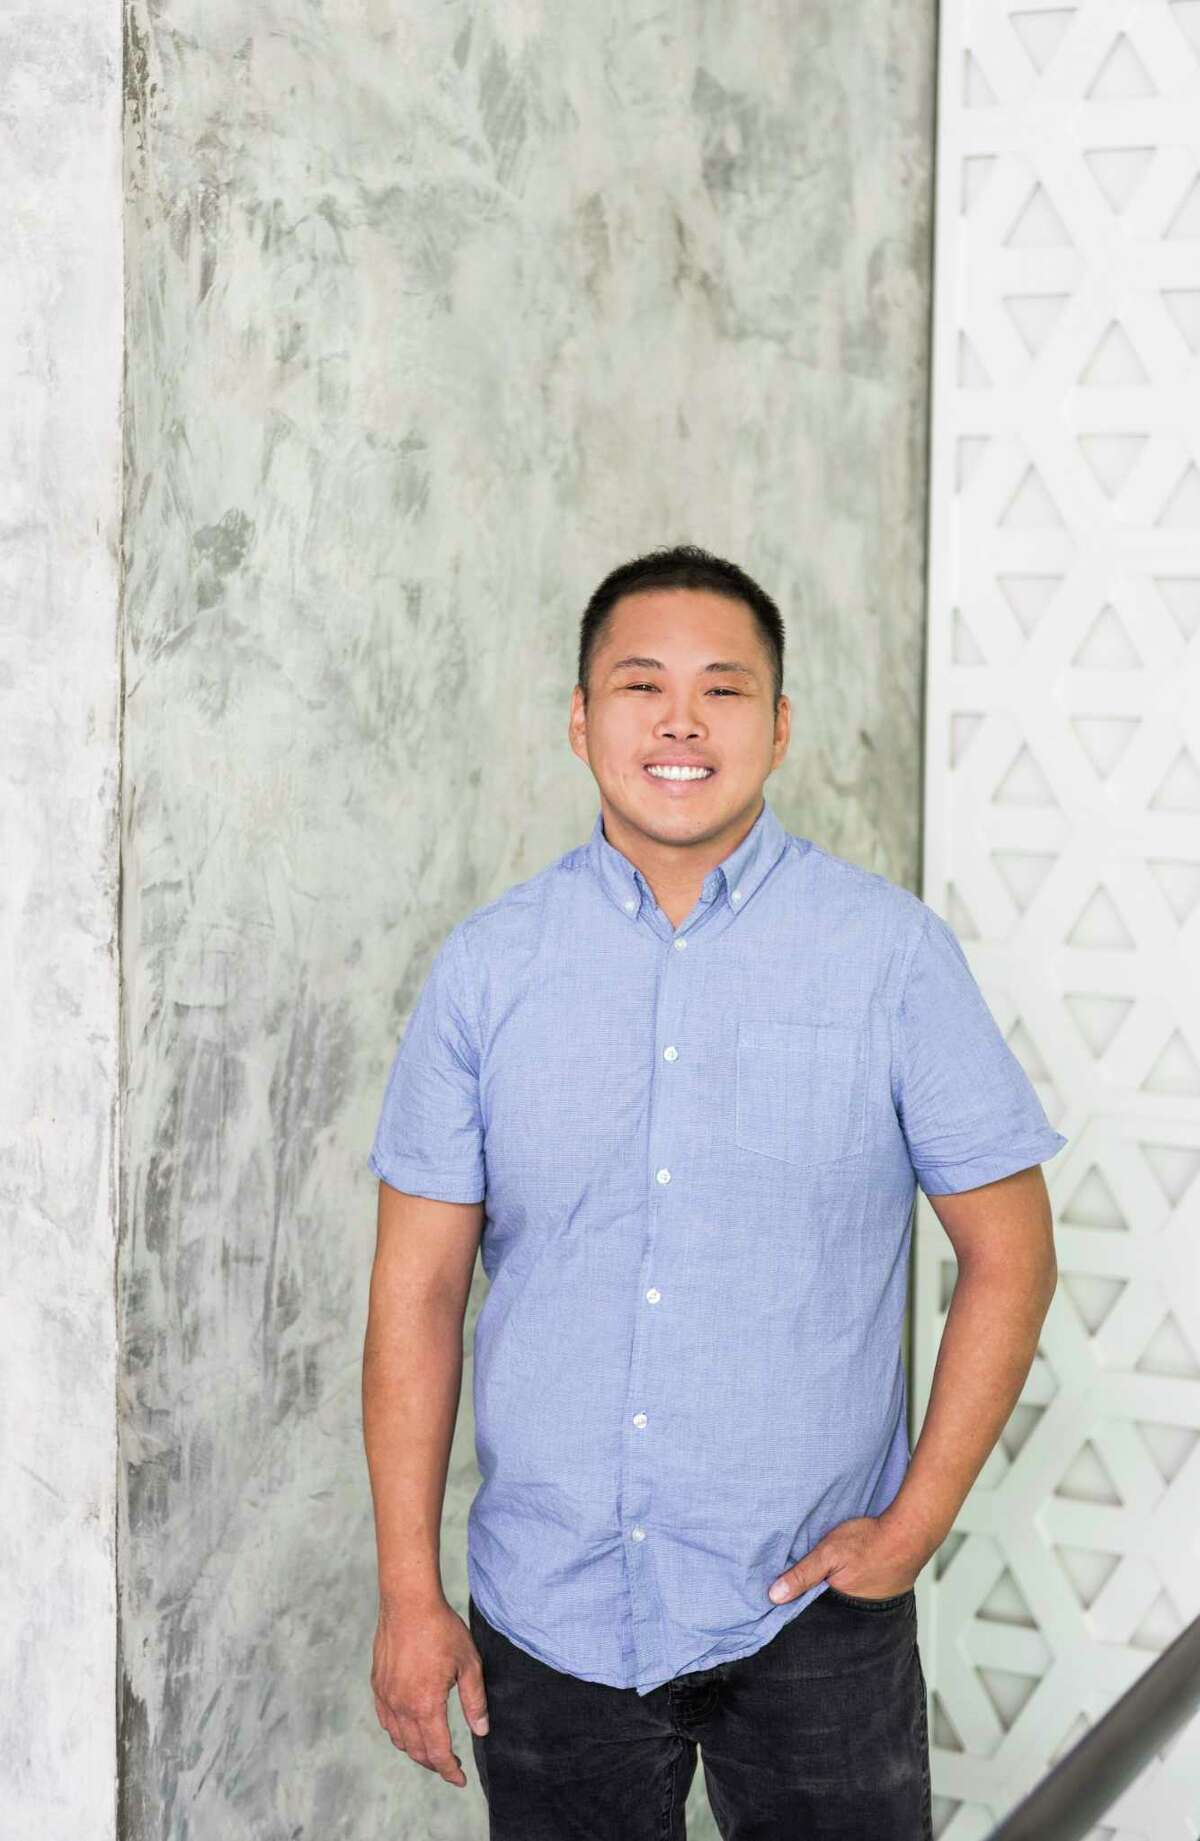 Chef Nick Wong will join the team of UB Preserv as chef de cuisine.